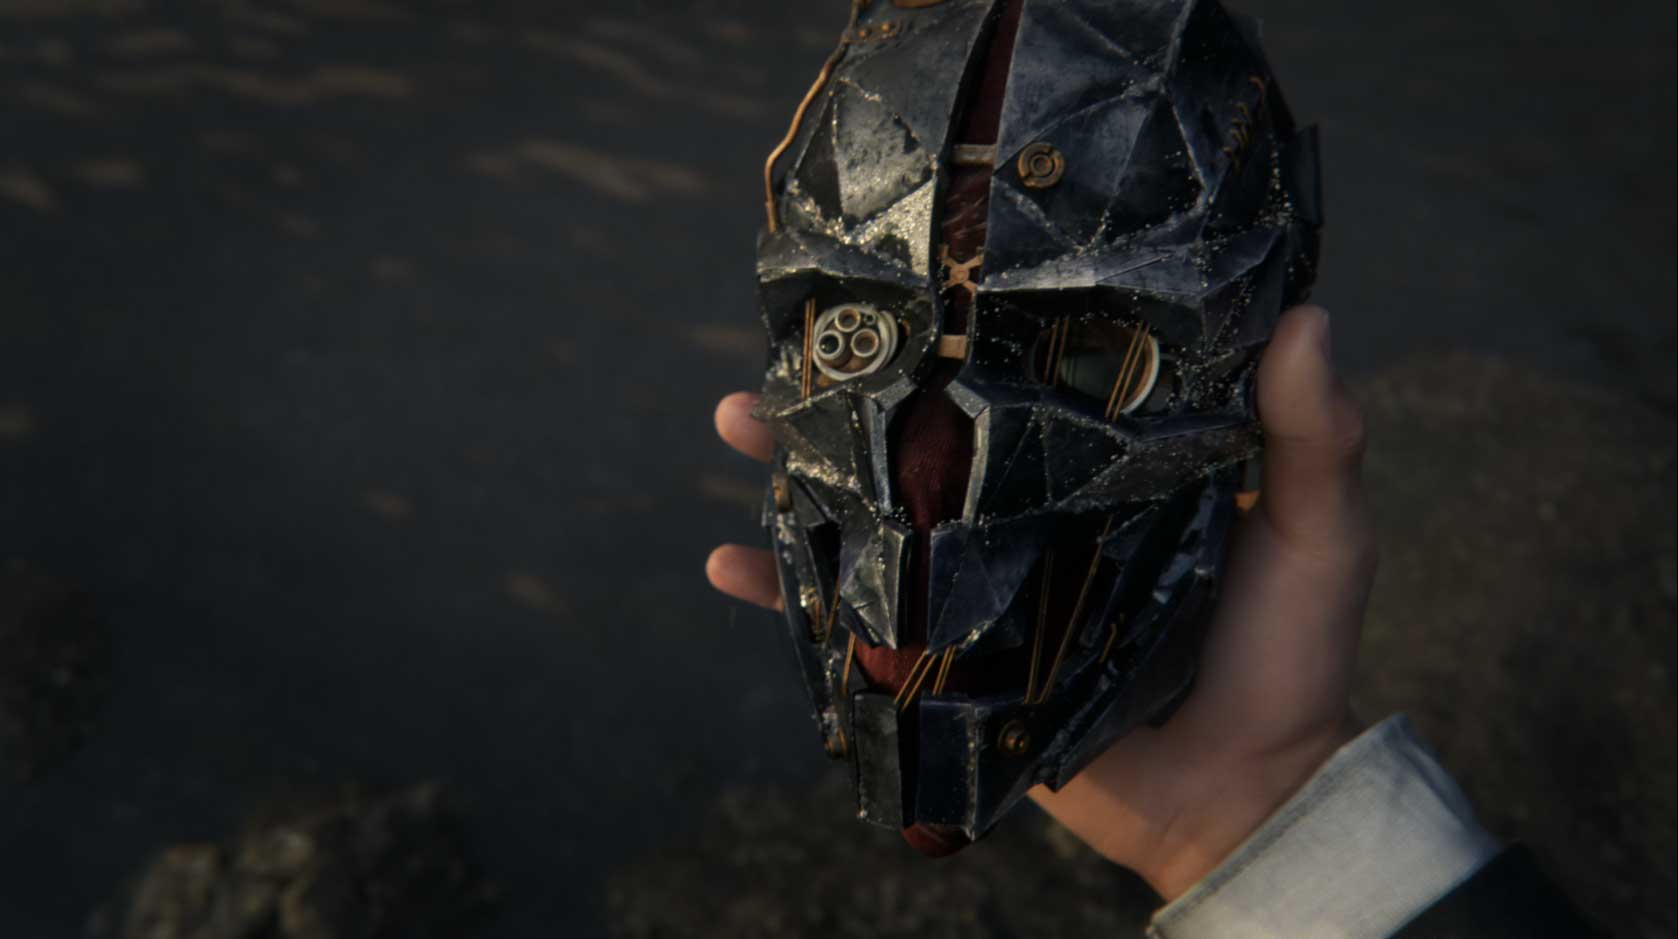 dishonored_2_e3_2015_6Mask_Trailer_Still